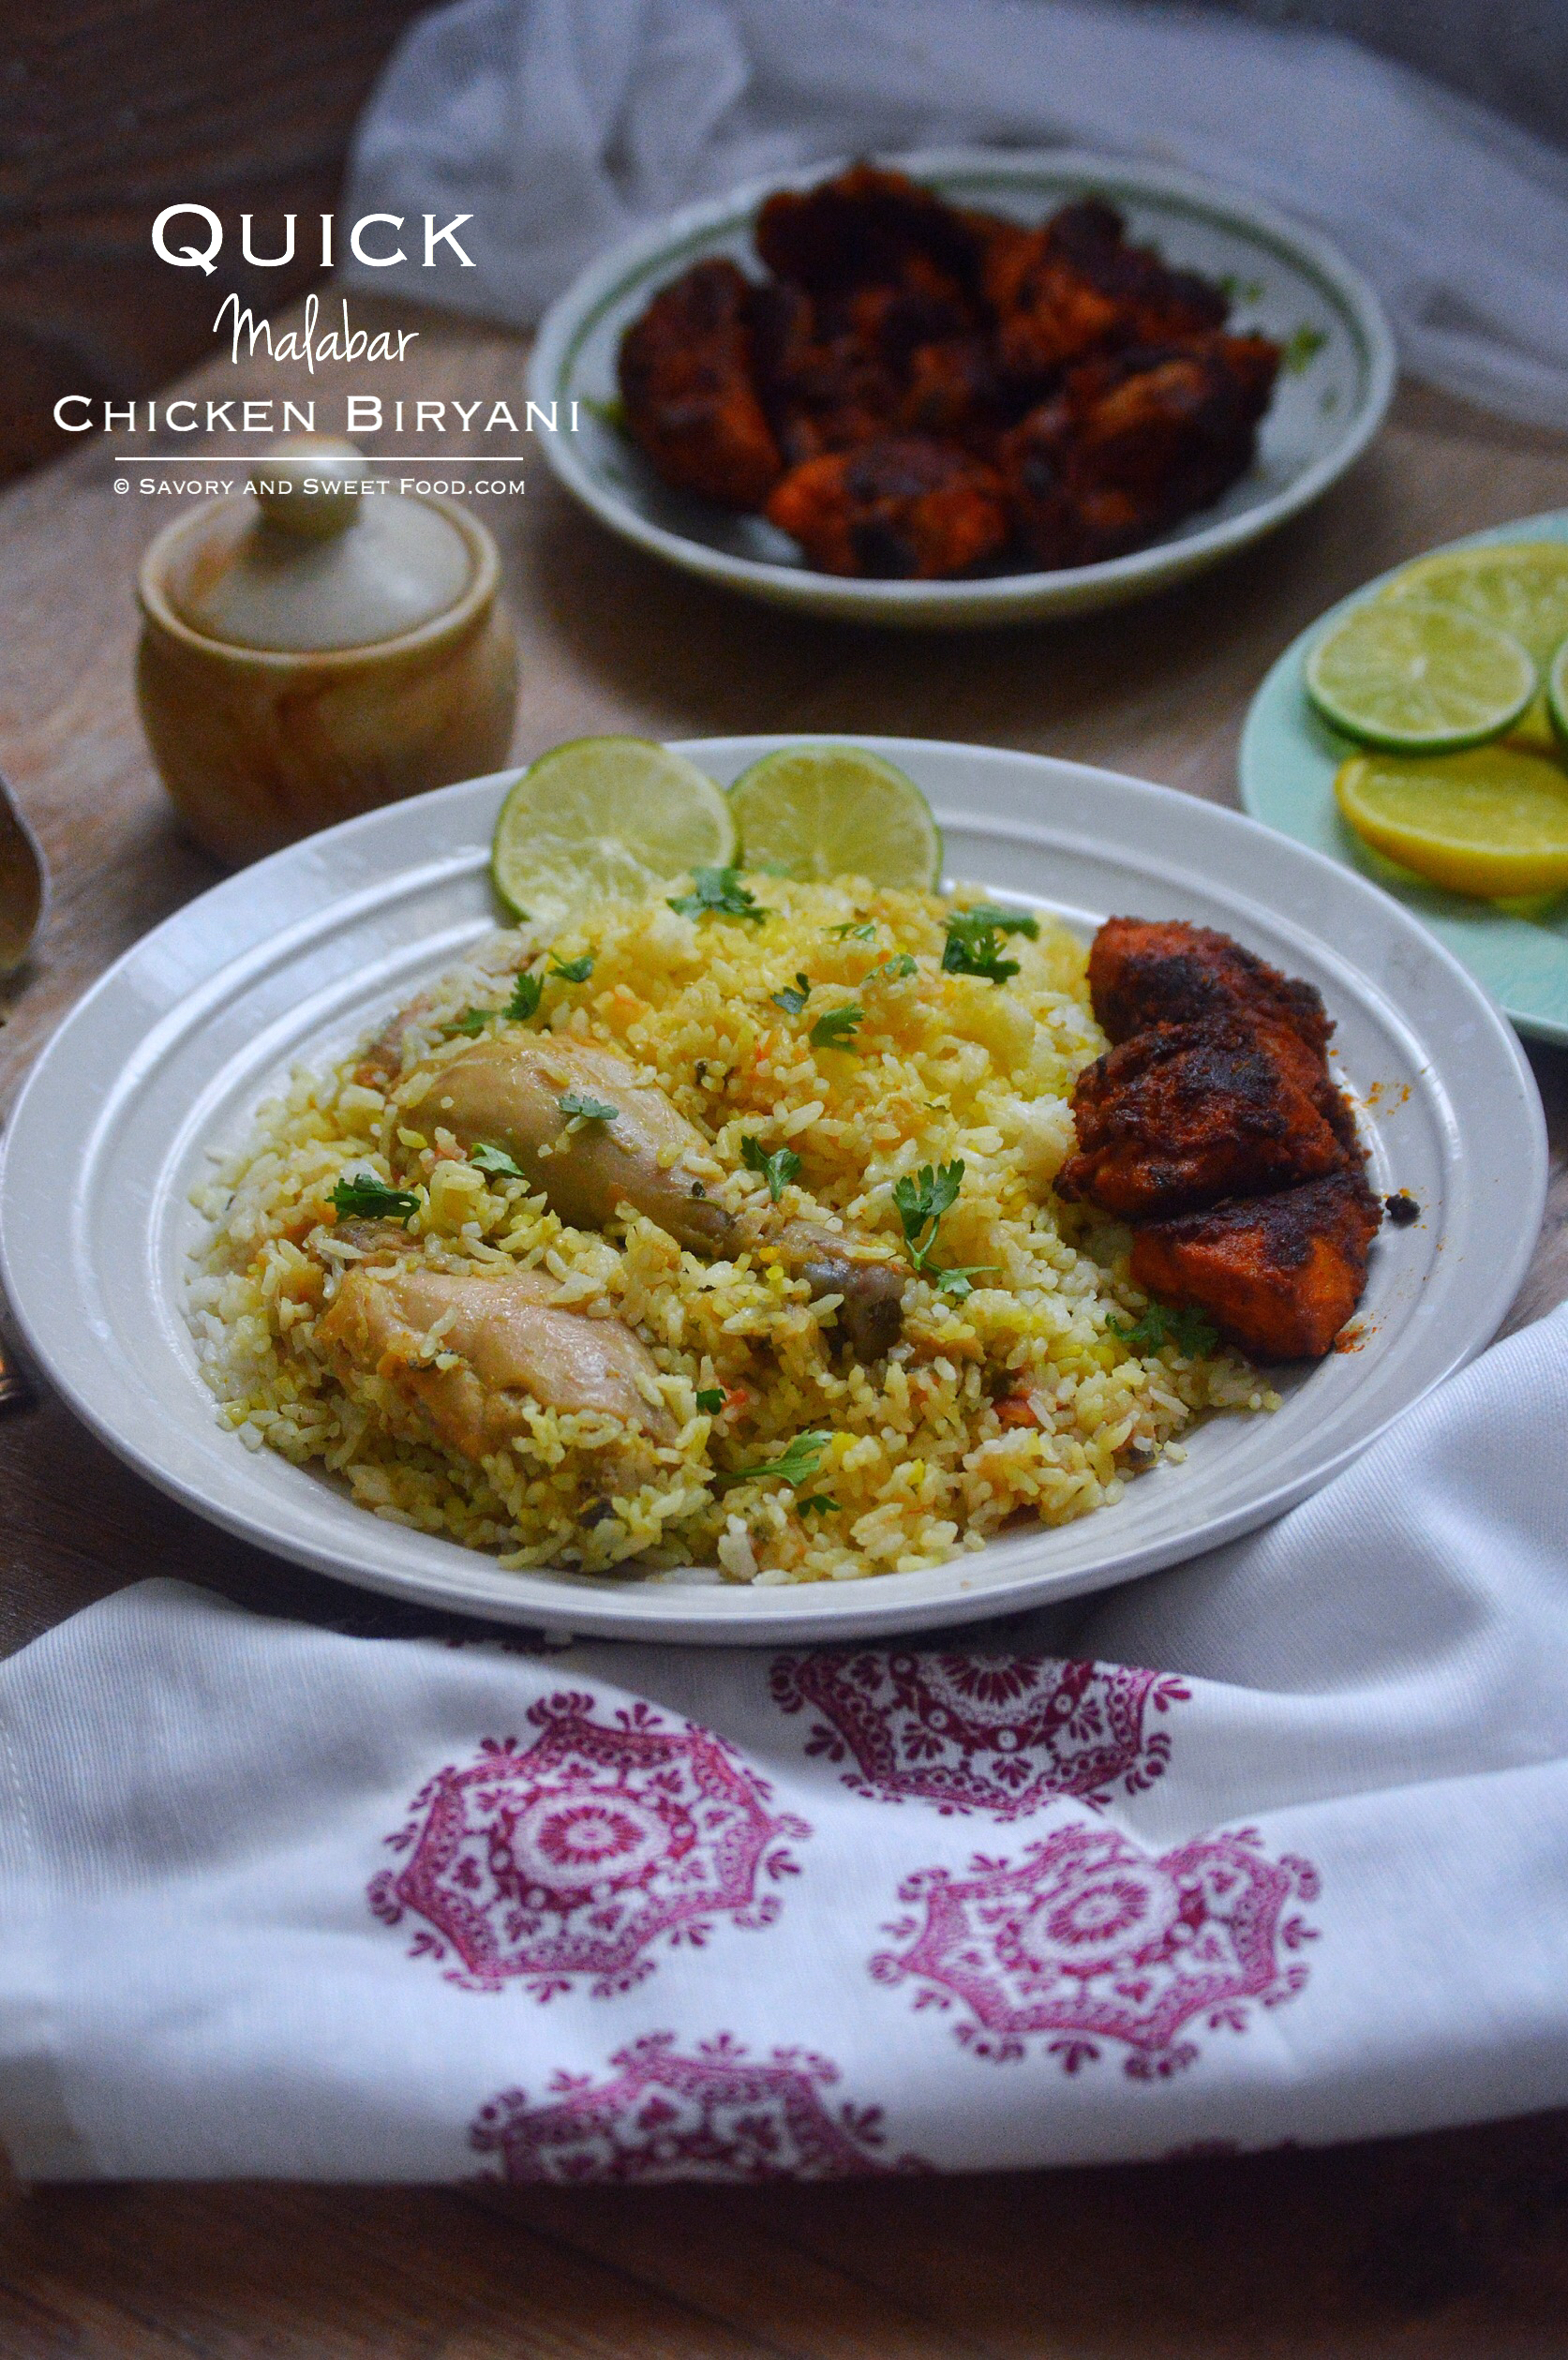 Malabar Chicken Biryani (Quick Version)